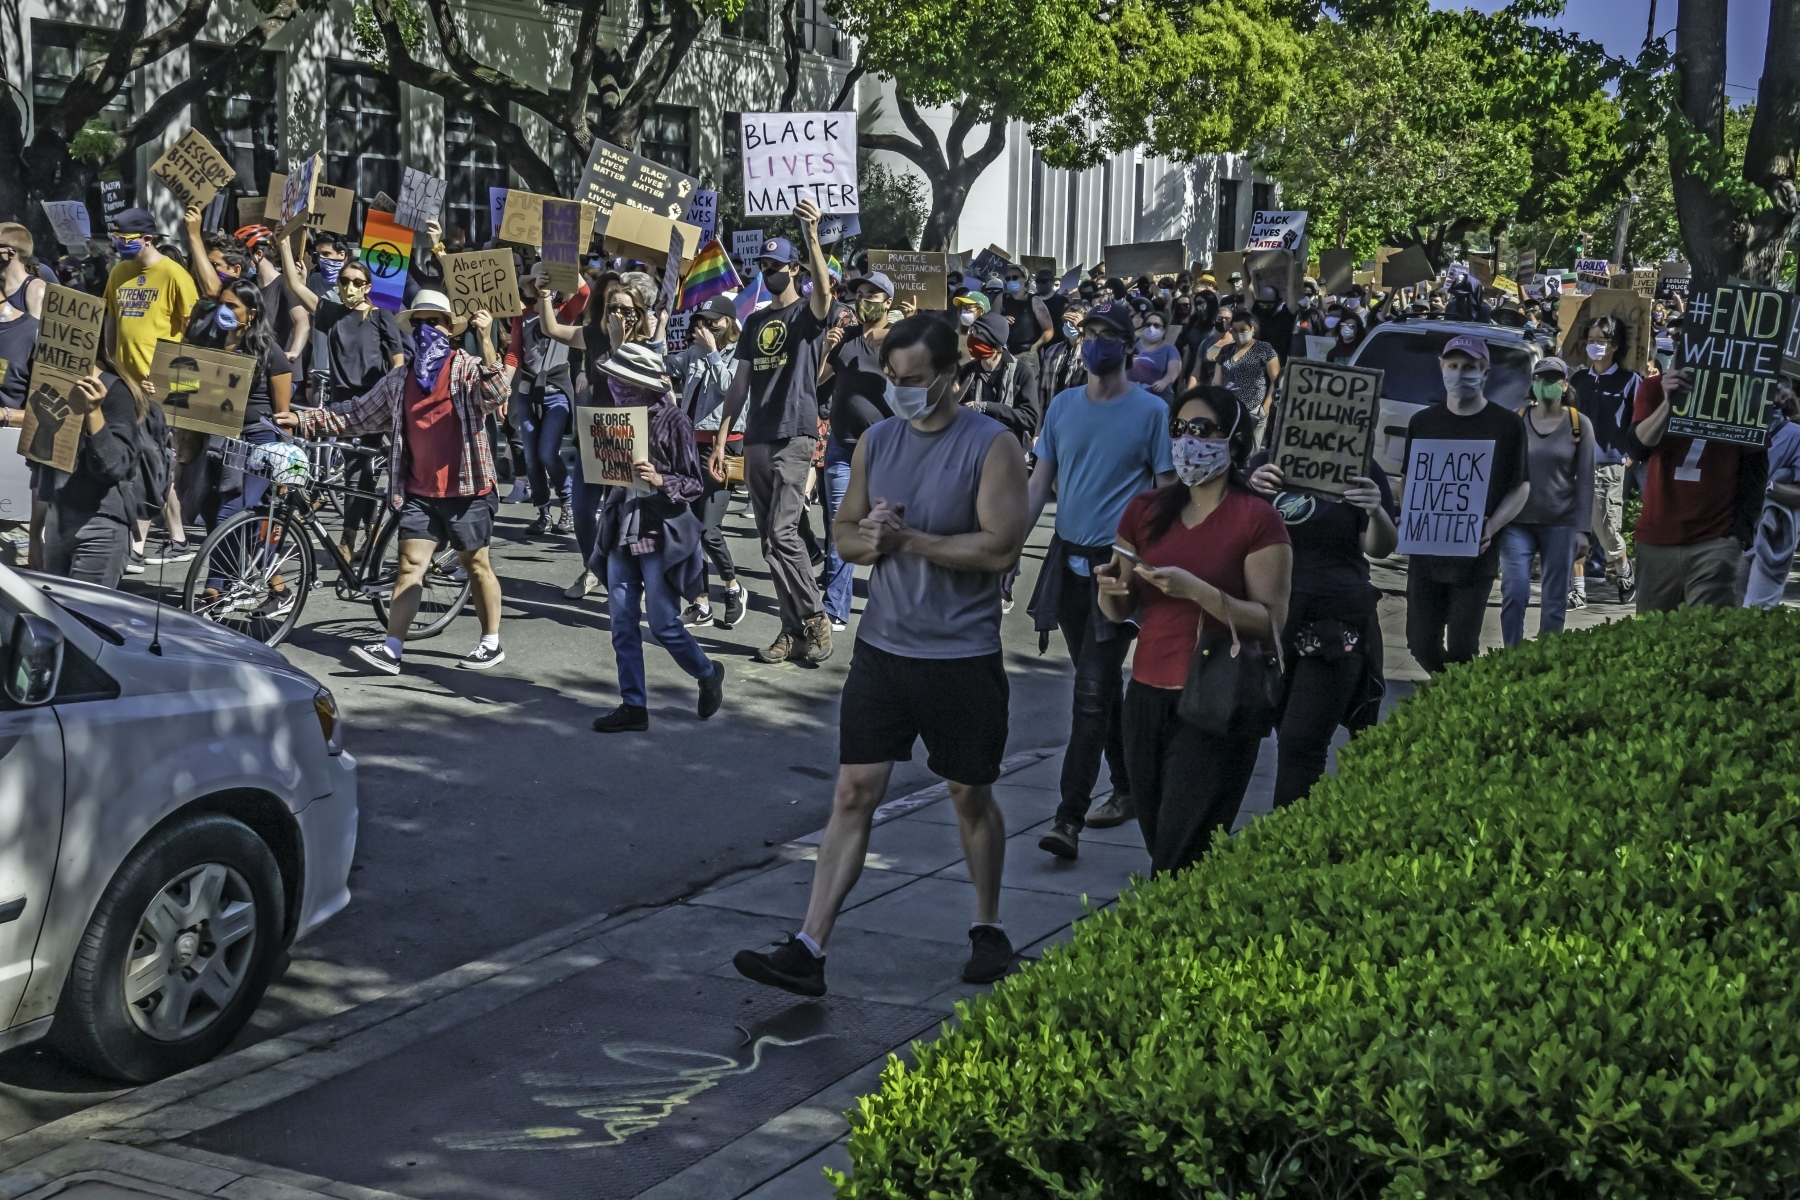 Berkeley-takes-a-stand-for-Black-Lives.-1-On-June-6th-thousands-marched-from-Malcolm-X-Elementary-School-to-Civic-Center-Park.-JB-1-Place-by-Mishaa-Degraw-BK